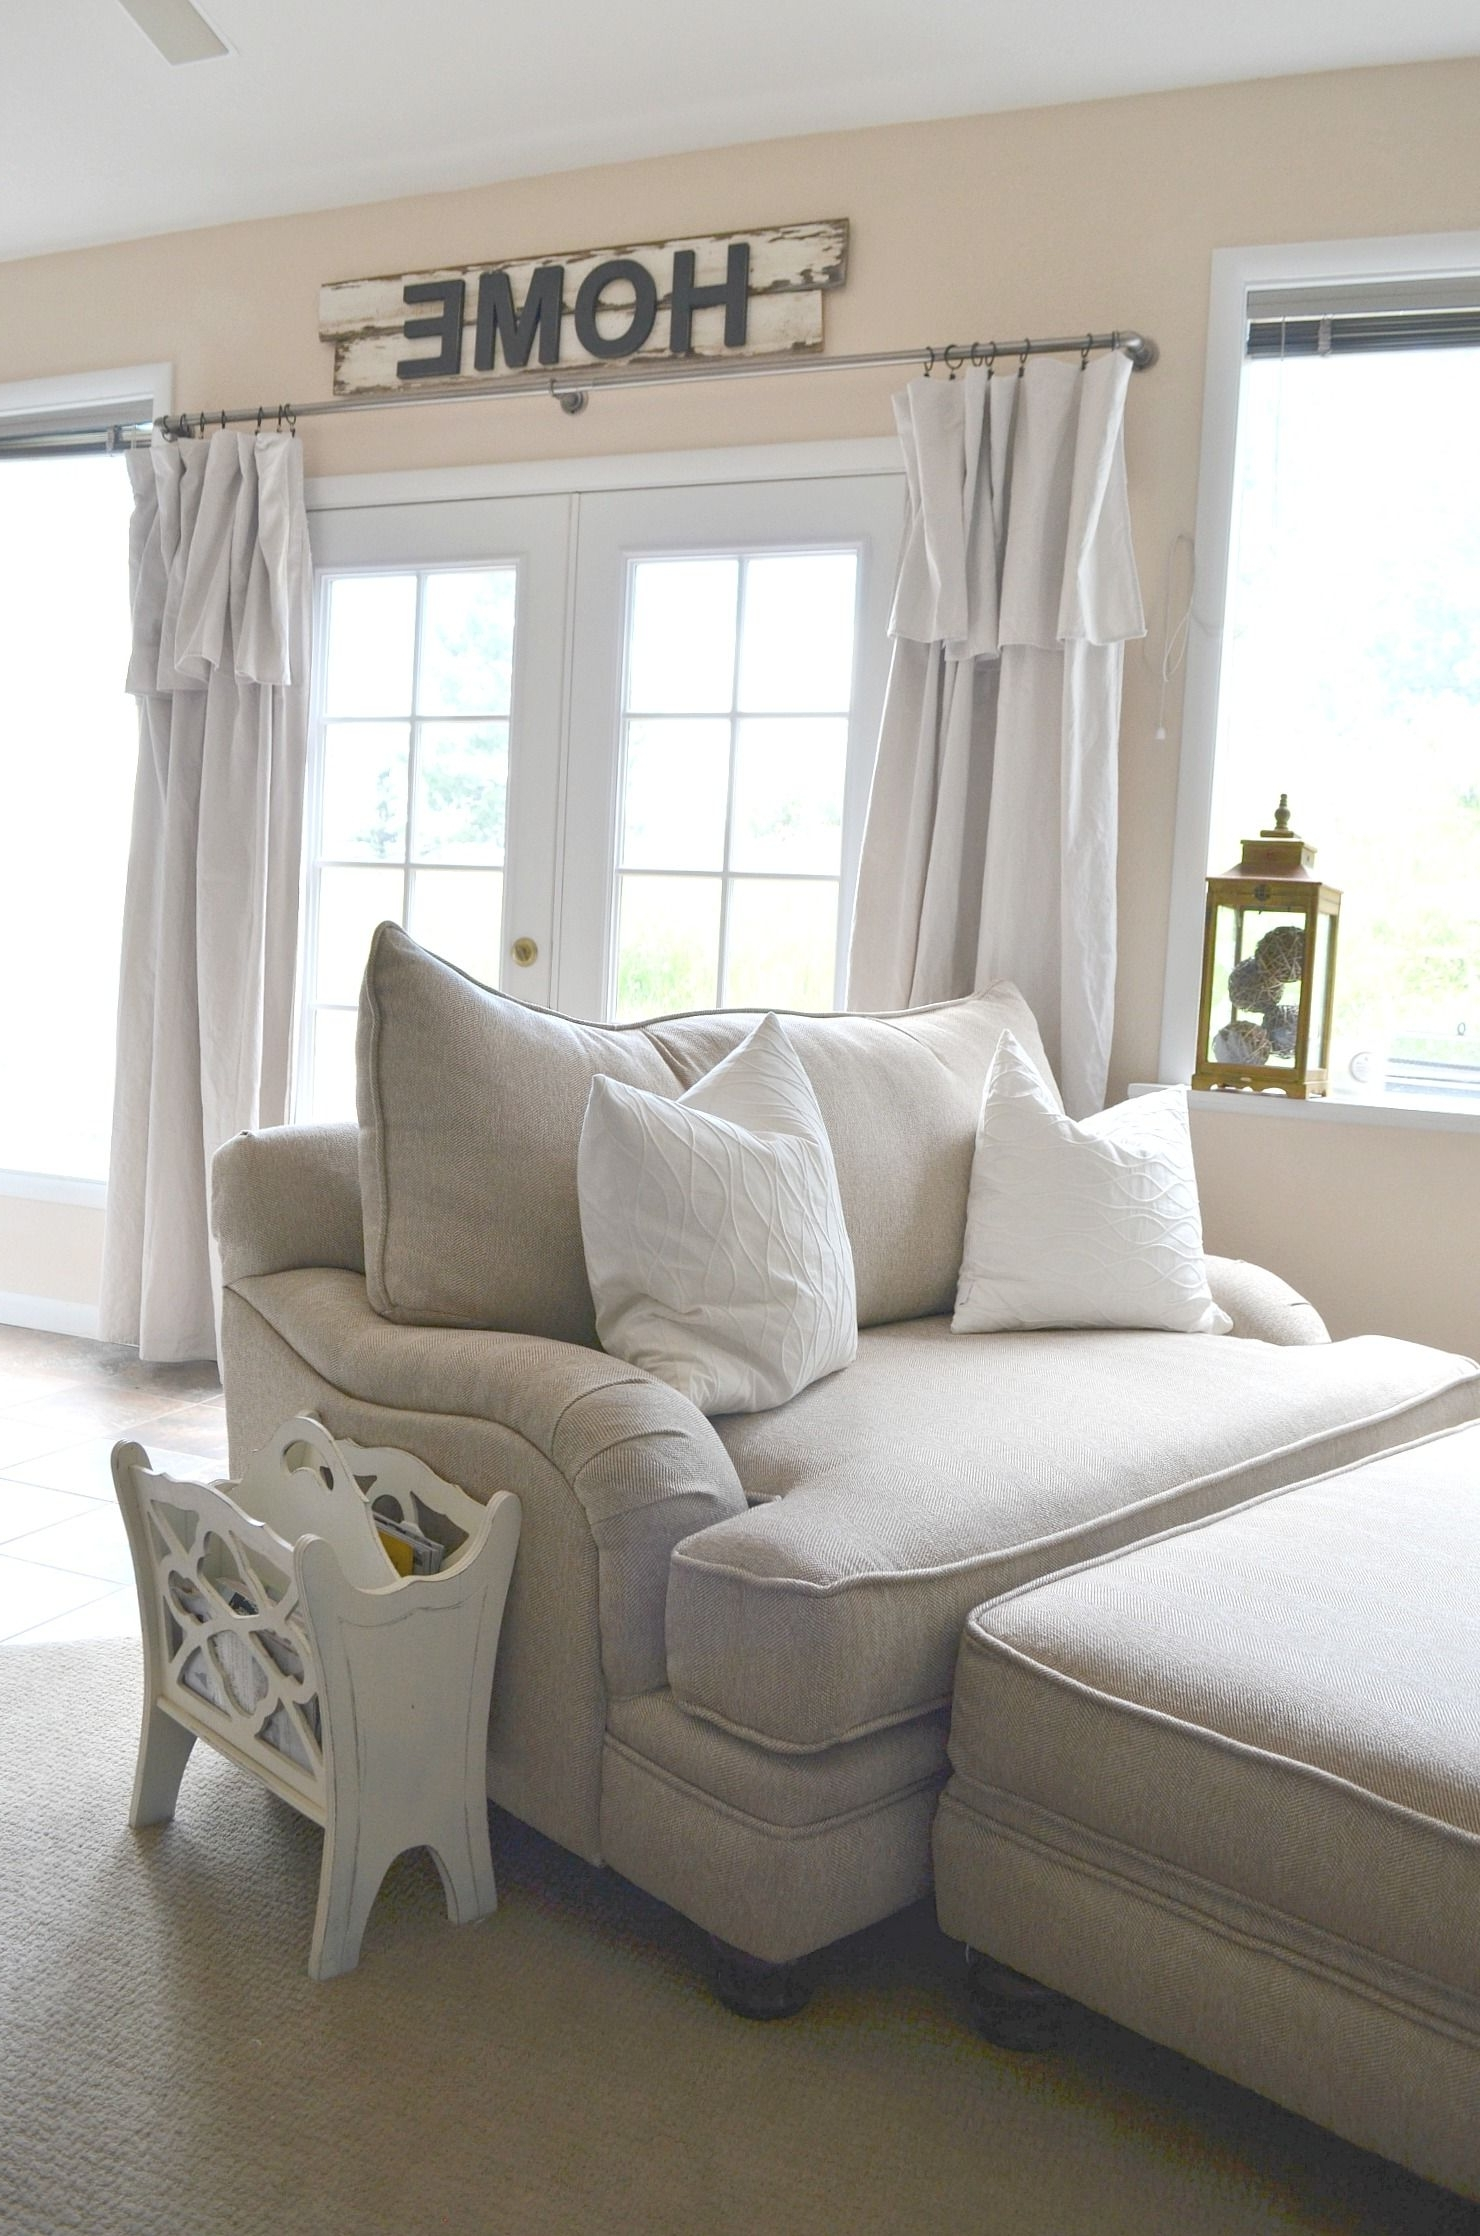 Large Sofa Chairs Regarding Most Current Farmhouse Style Oversized Chairs (View 9 of 20)